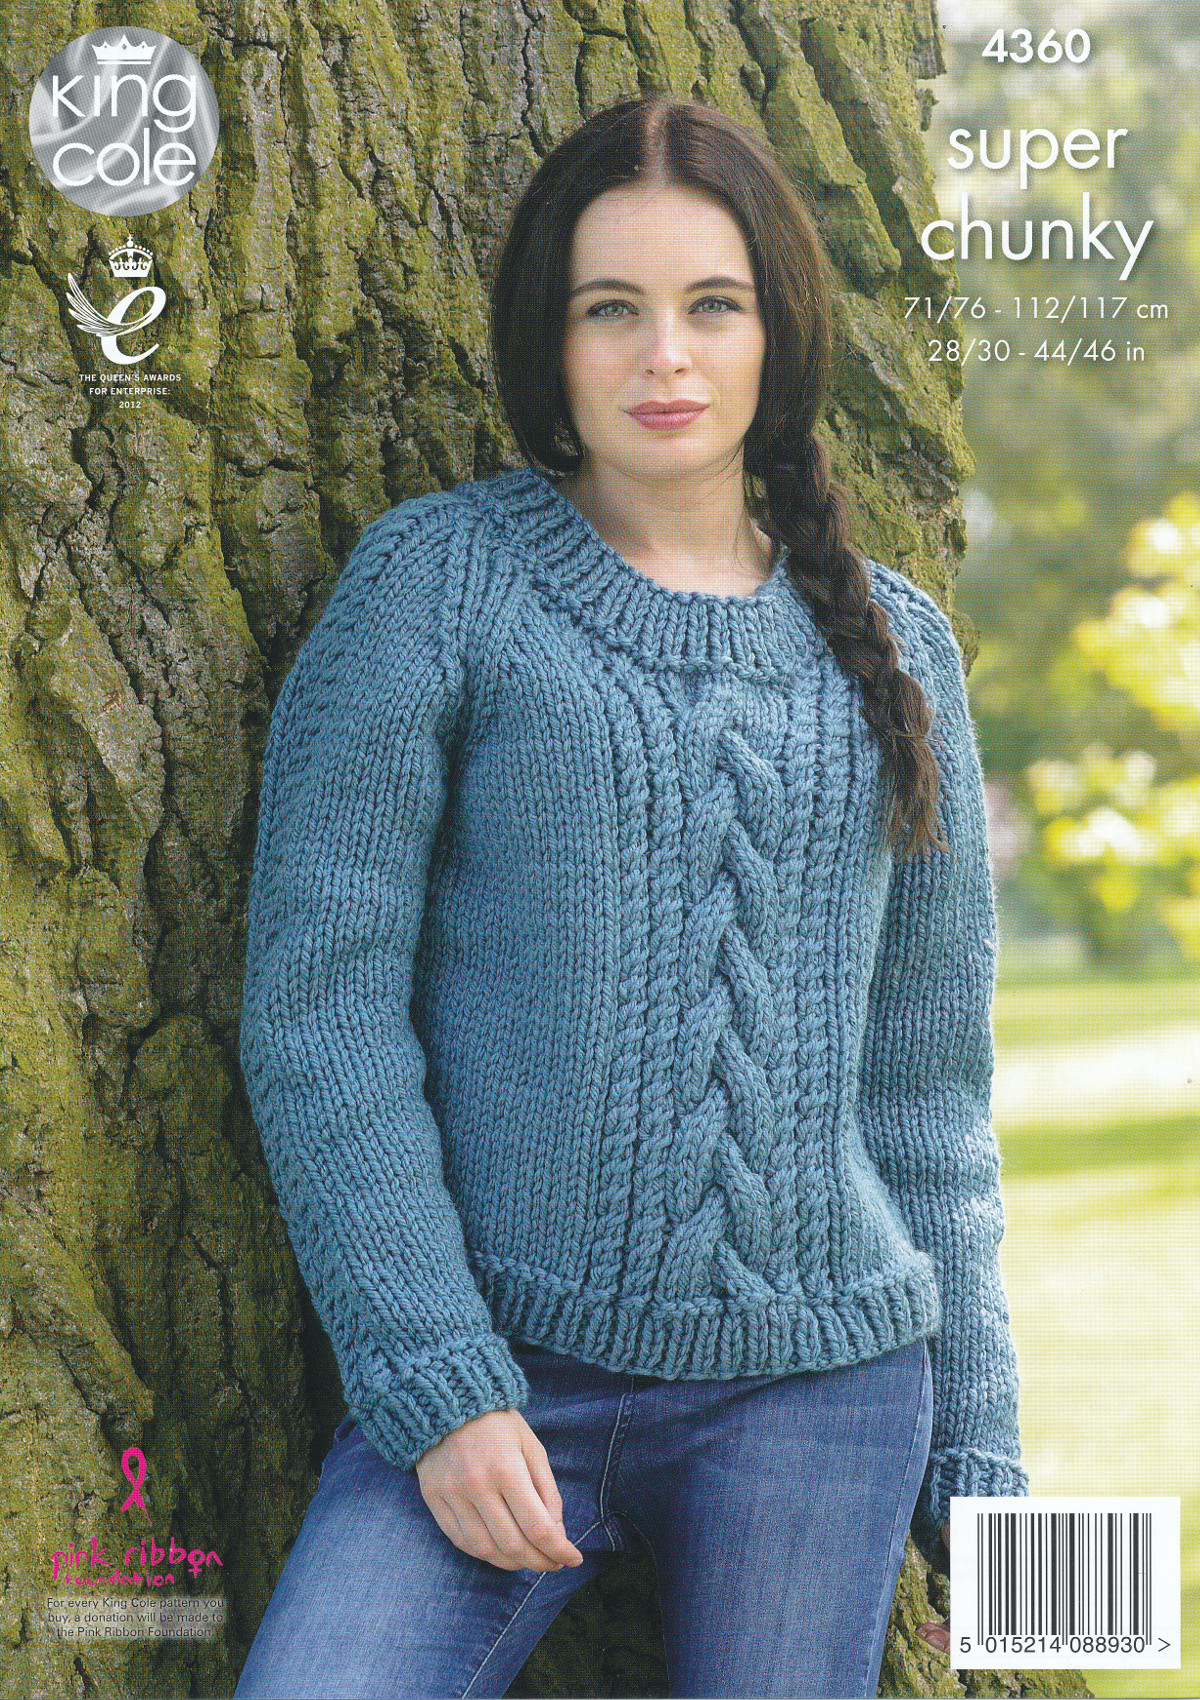 King Cole Ladies Super Chunky Knitting Pattern Round Polo Neck ...